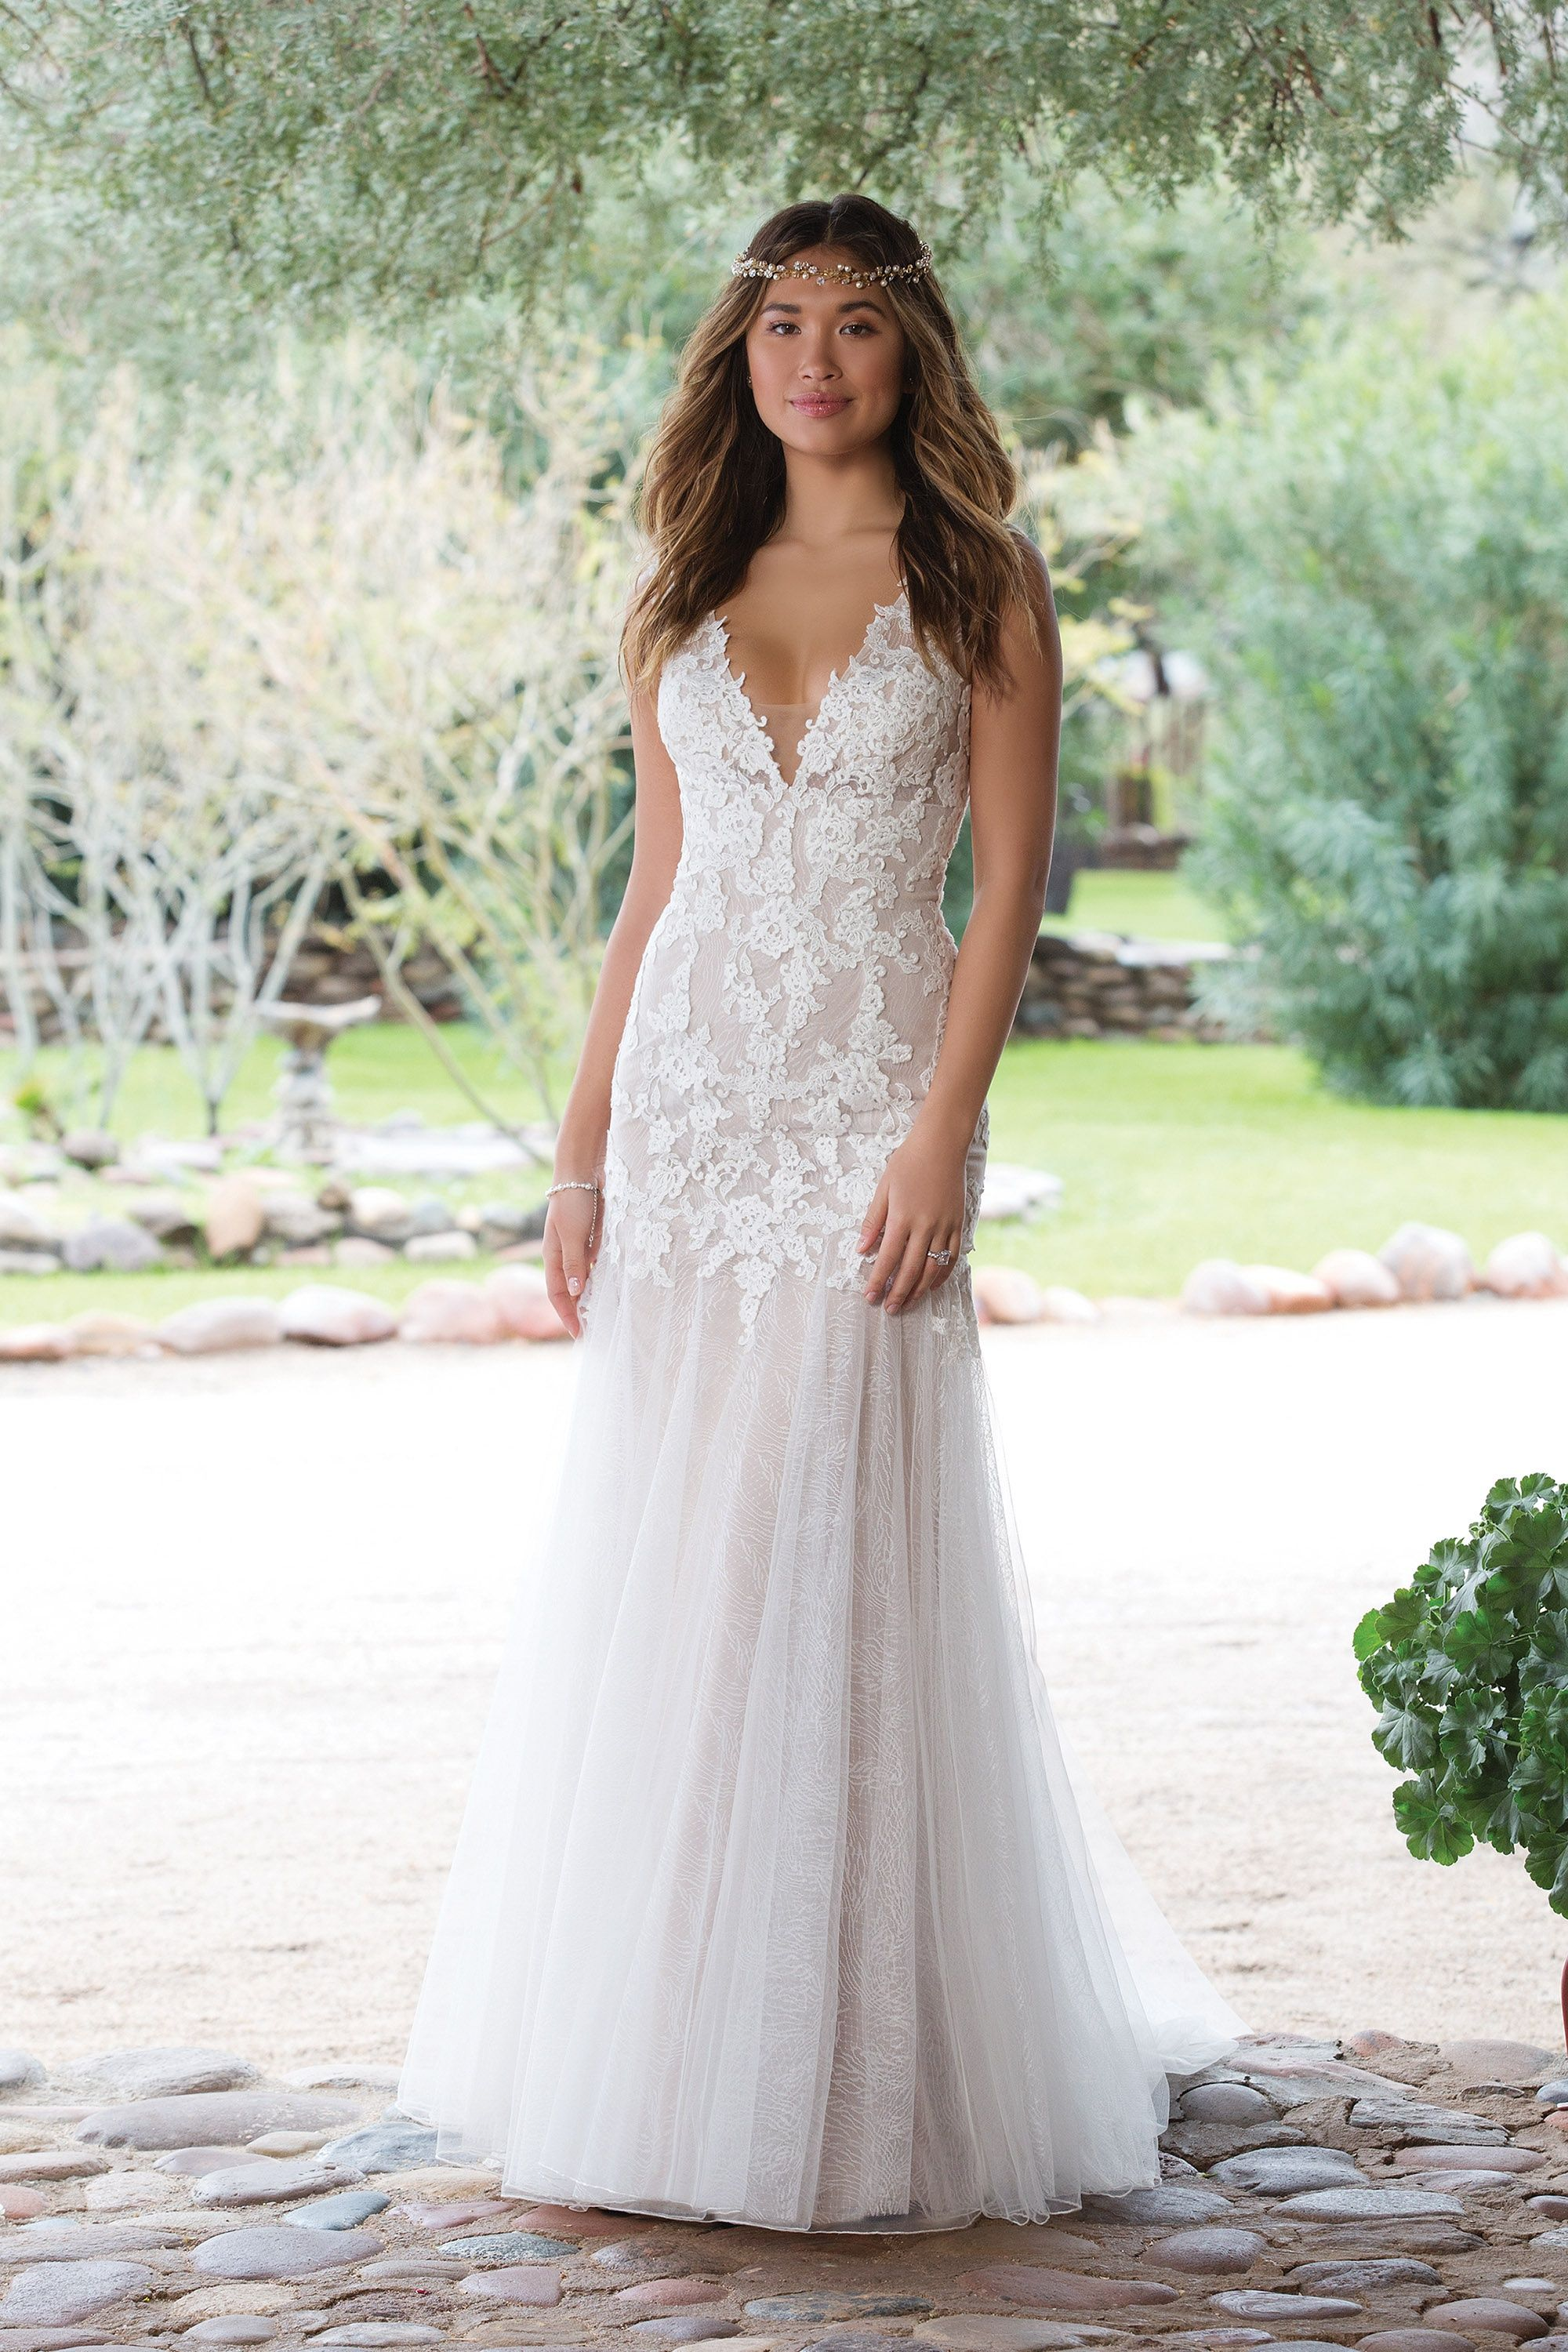 Sweetheart Gowns 1140 Nude/Ivory/Nude Size 10 Venice Lace Trumpet ...